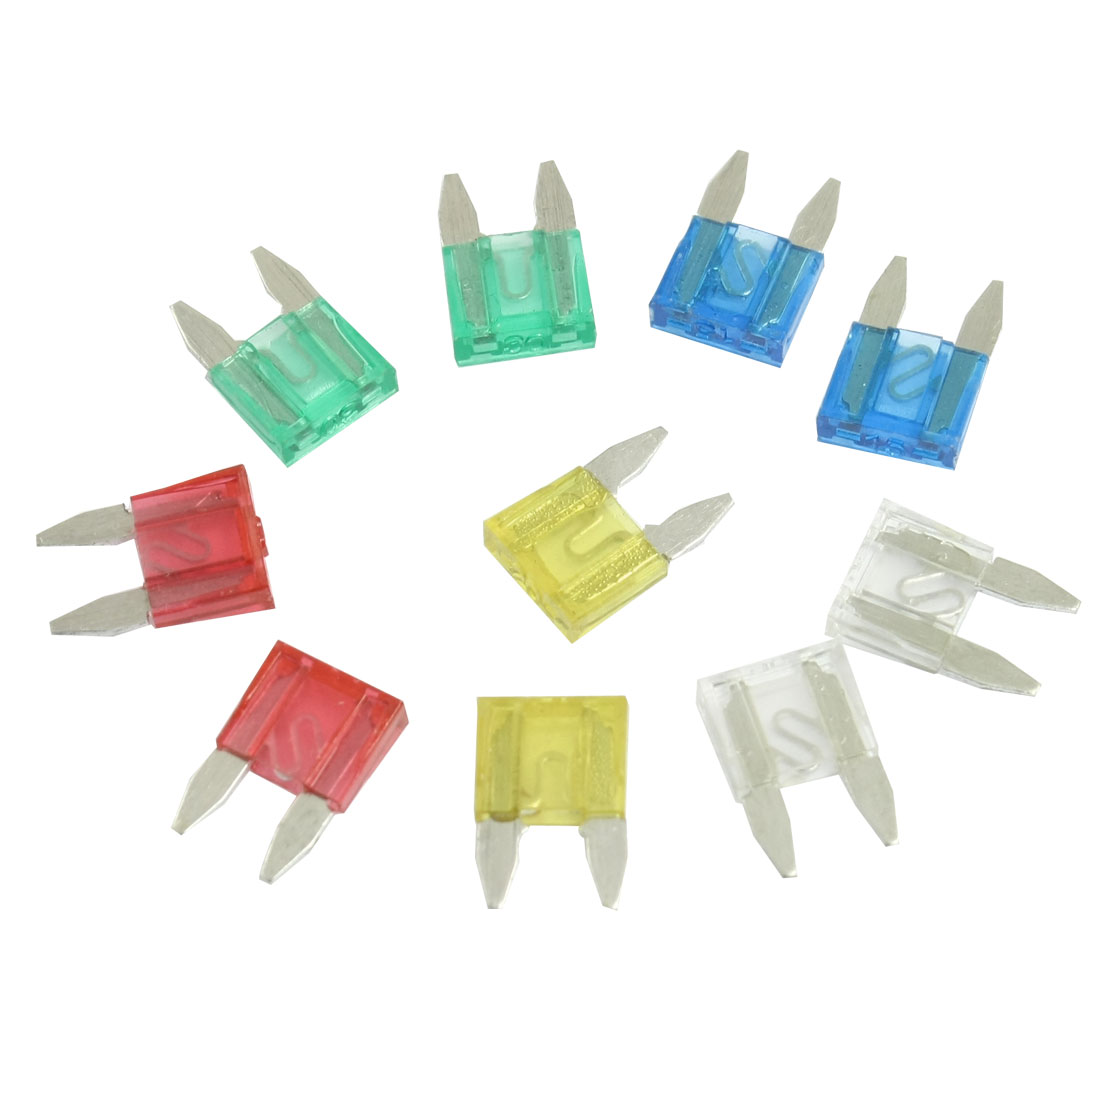 Unique Bargains 20 Pcs Plastic Push Pin Fastener Rivets Fender Clips for Car